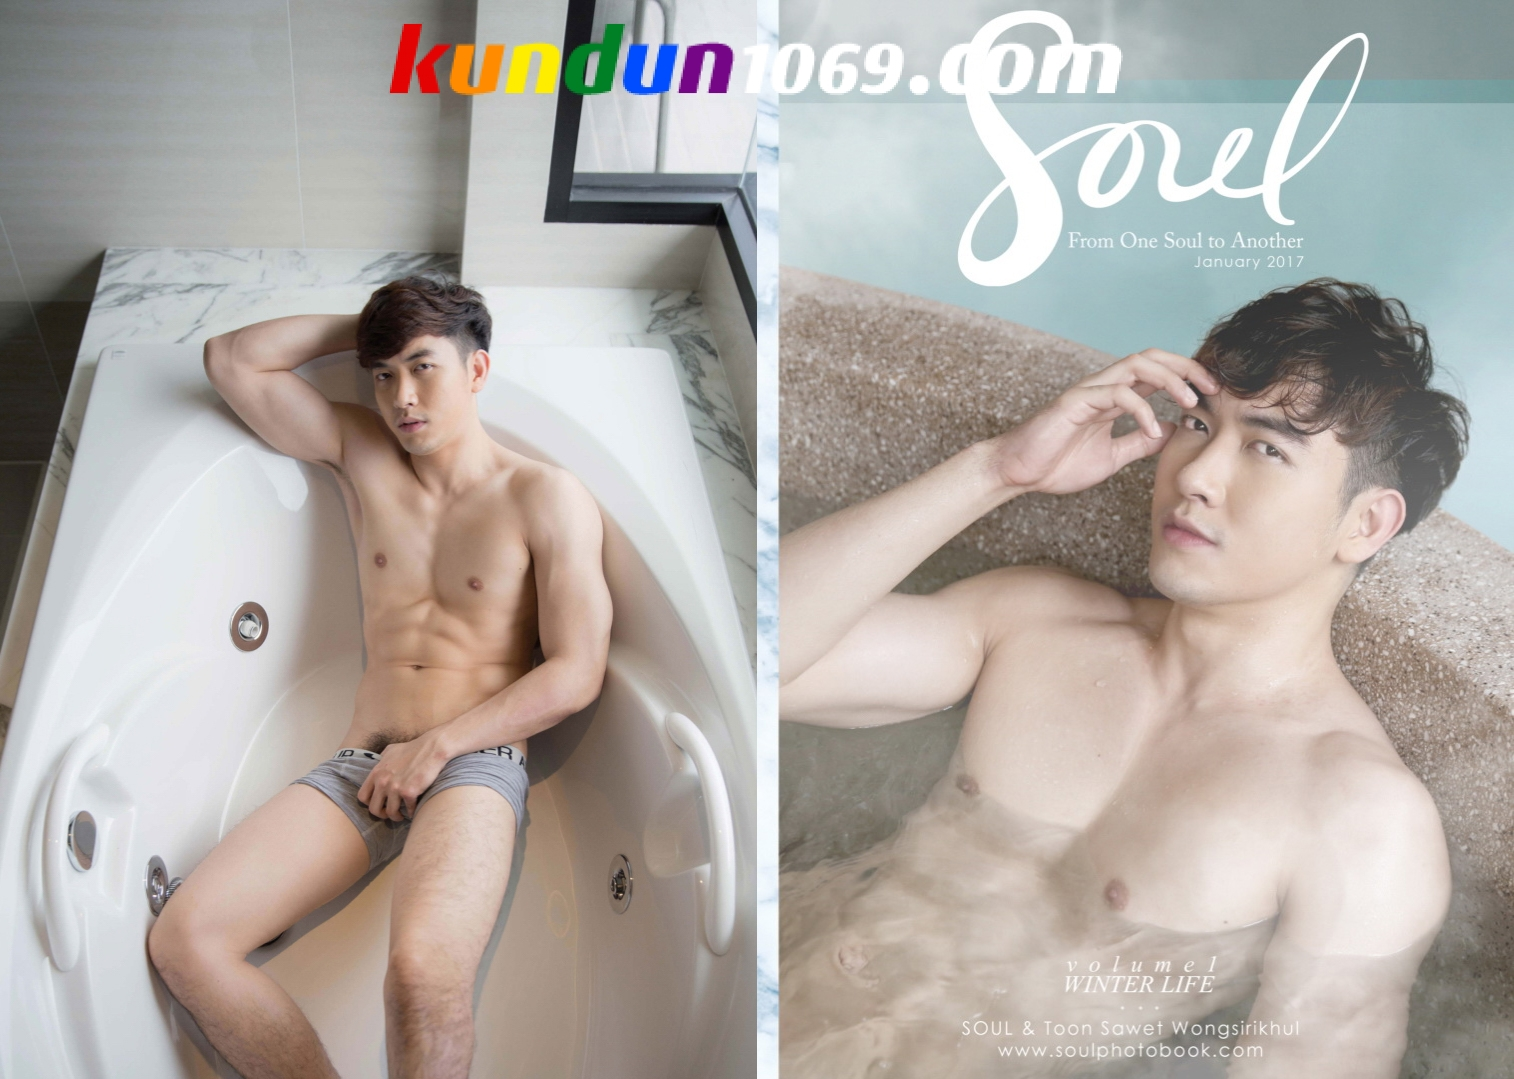 [PHOTO SET] SOUL ISSUE 1 – TOON SAWET WONGSIRSKHUL